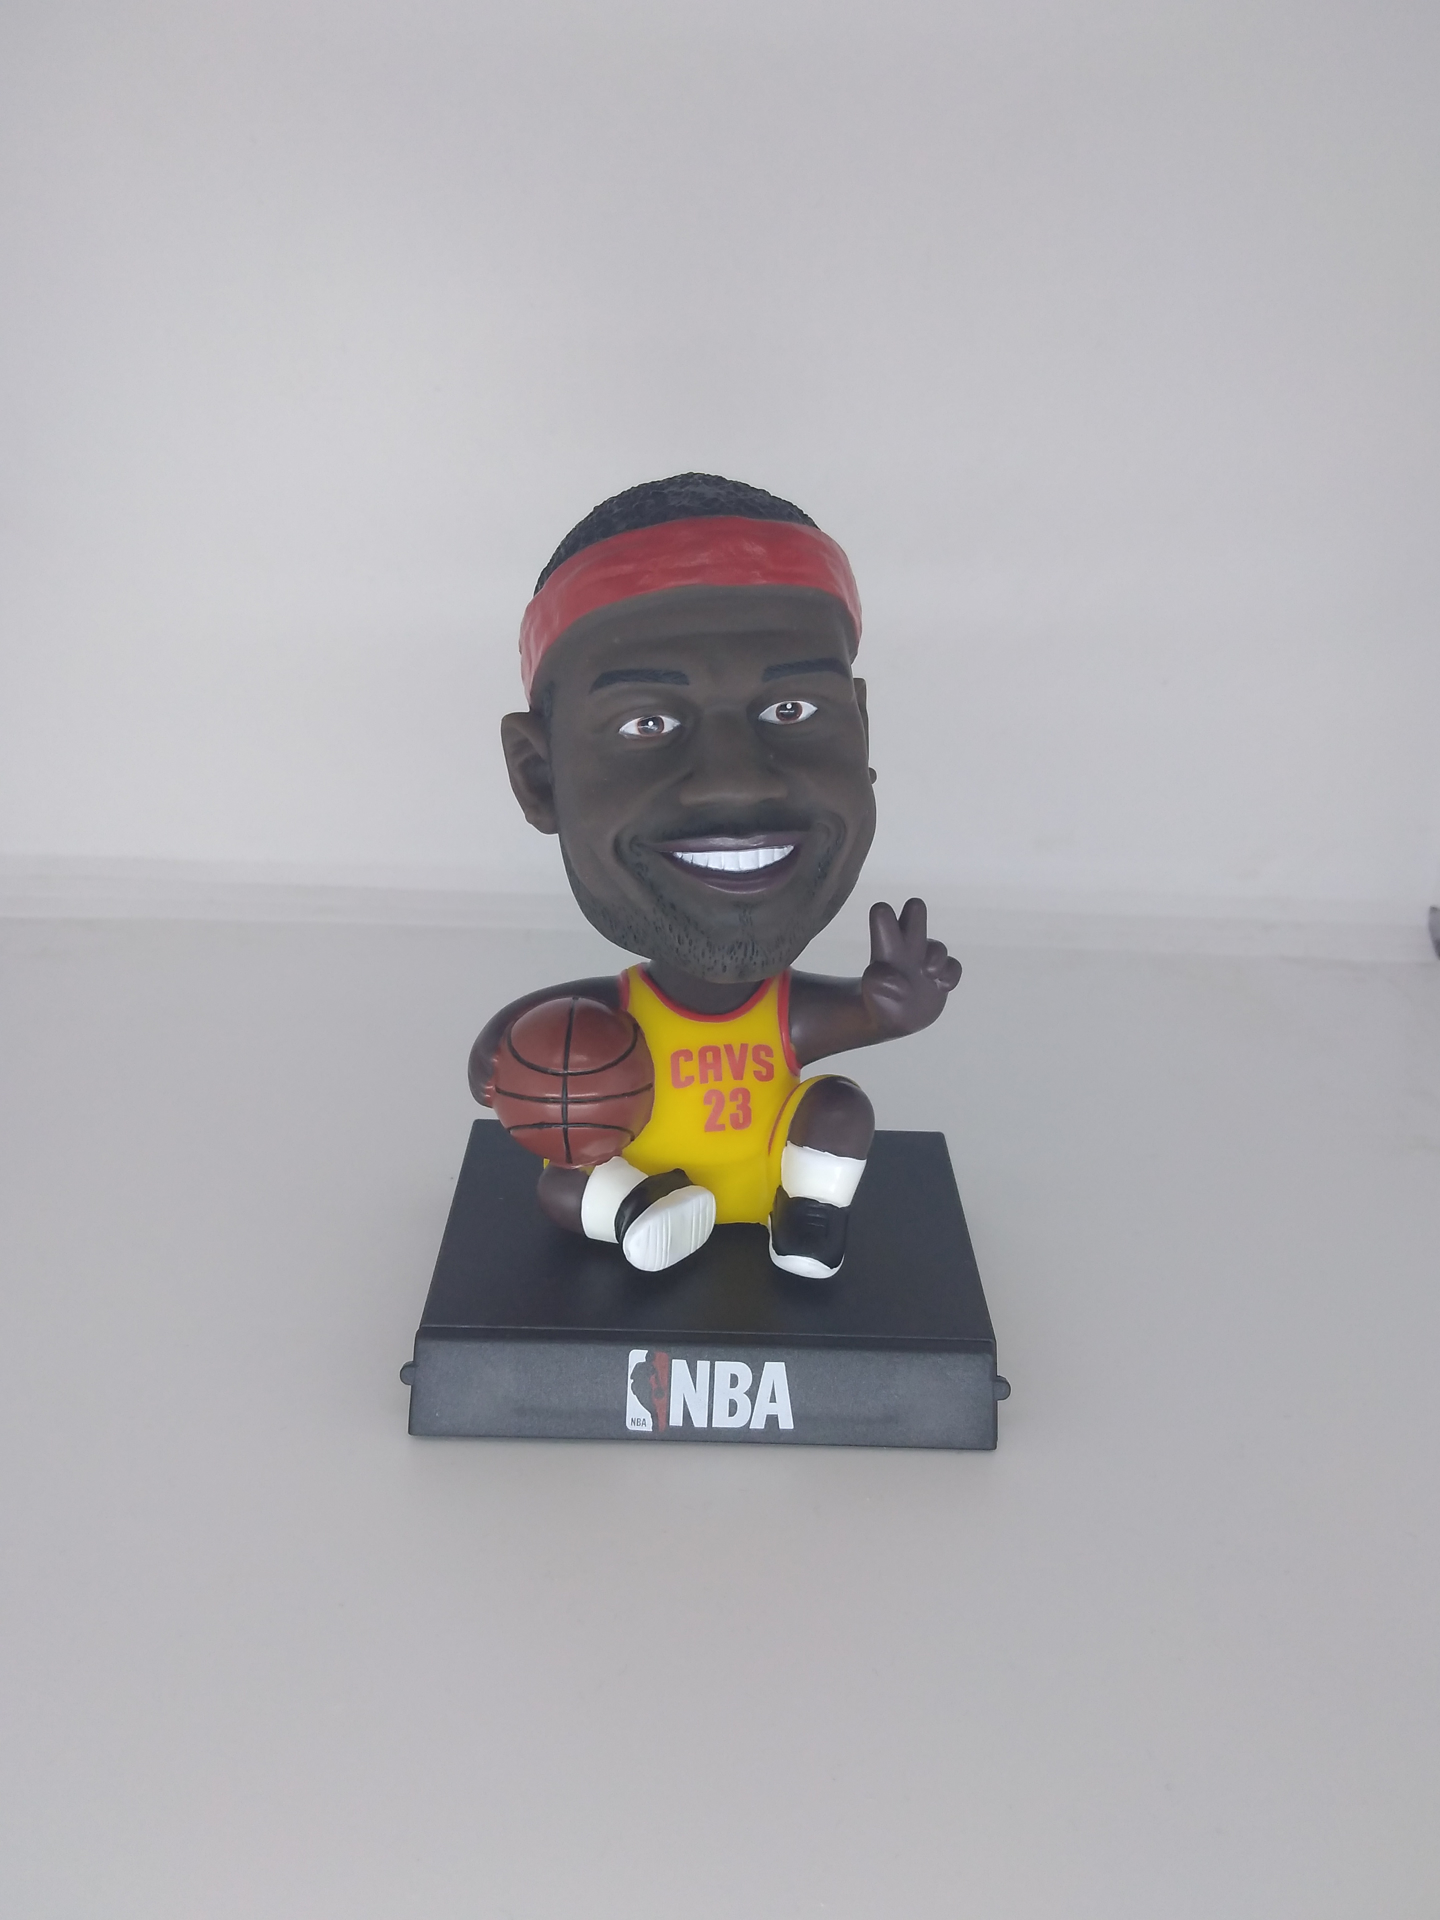 Picture of James . Bobblehead